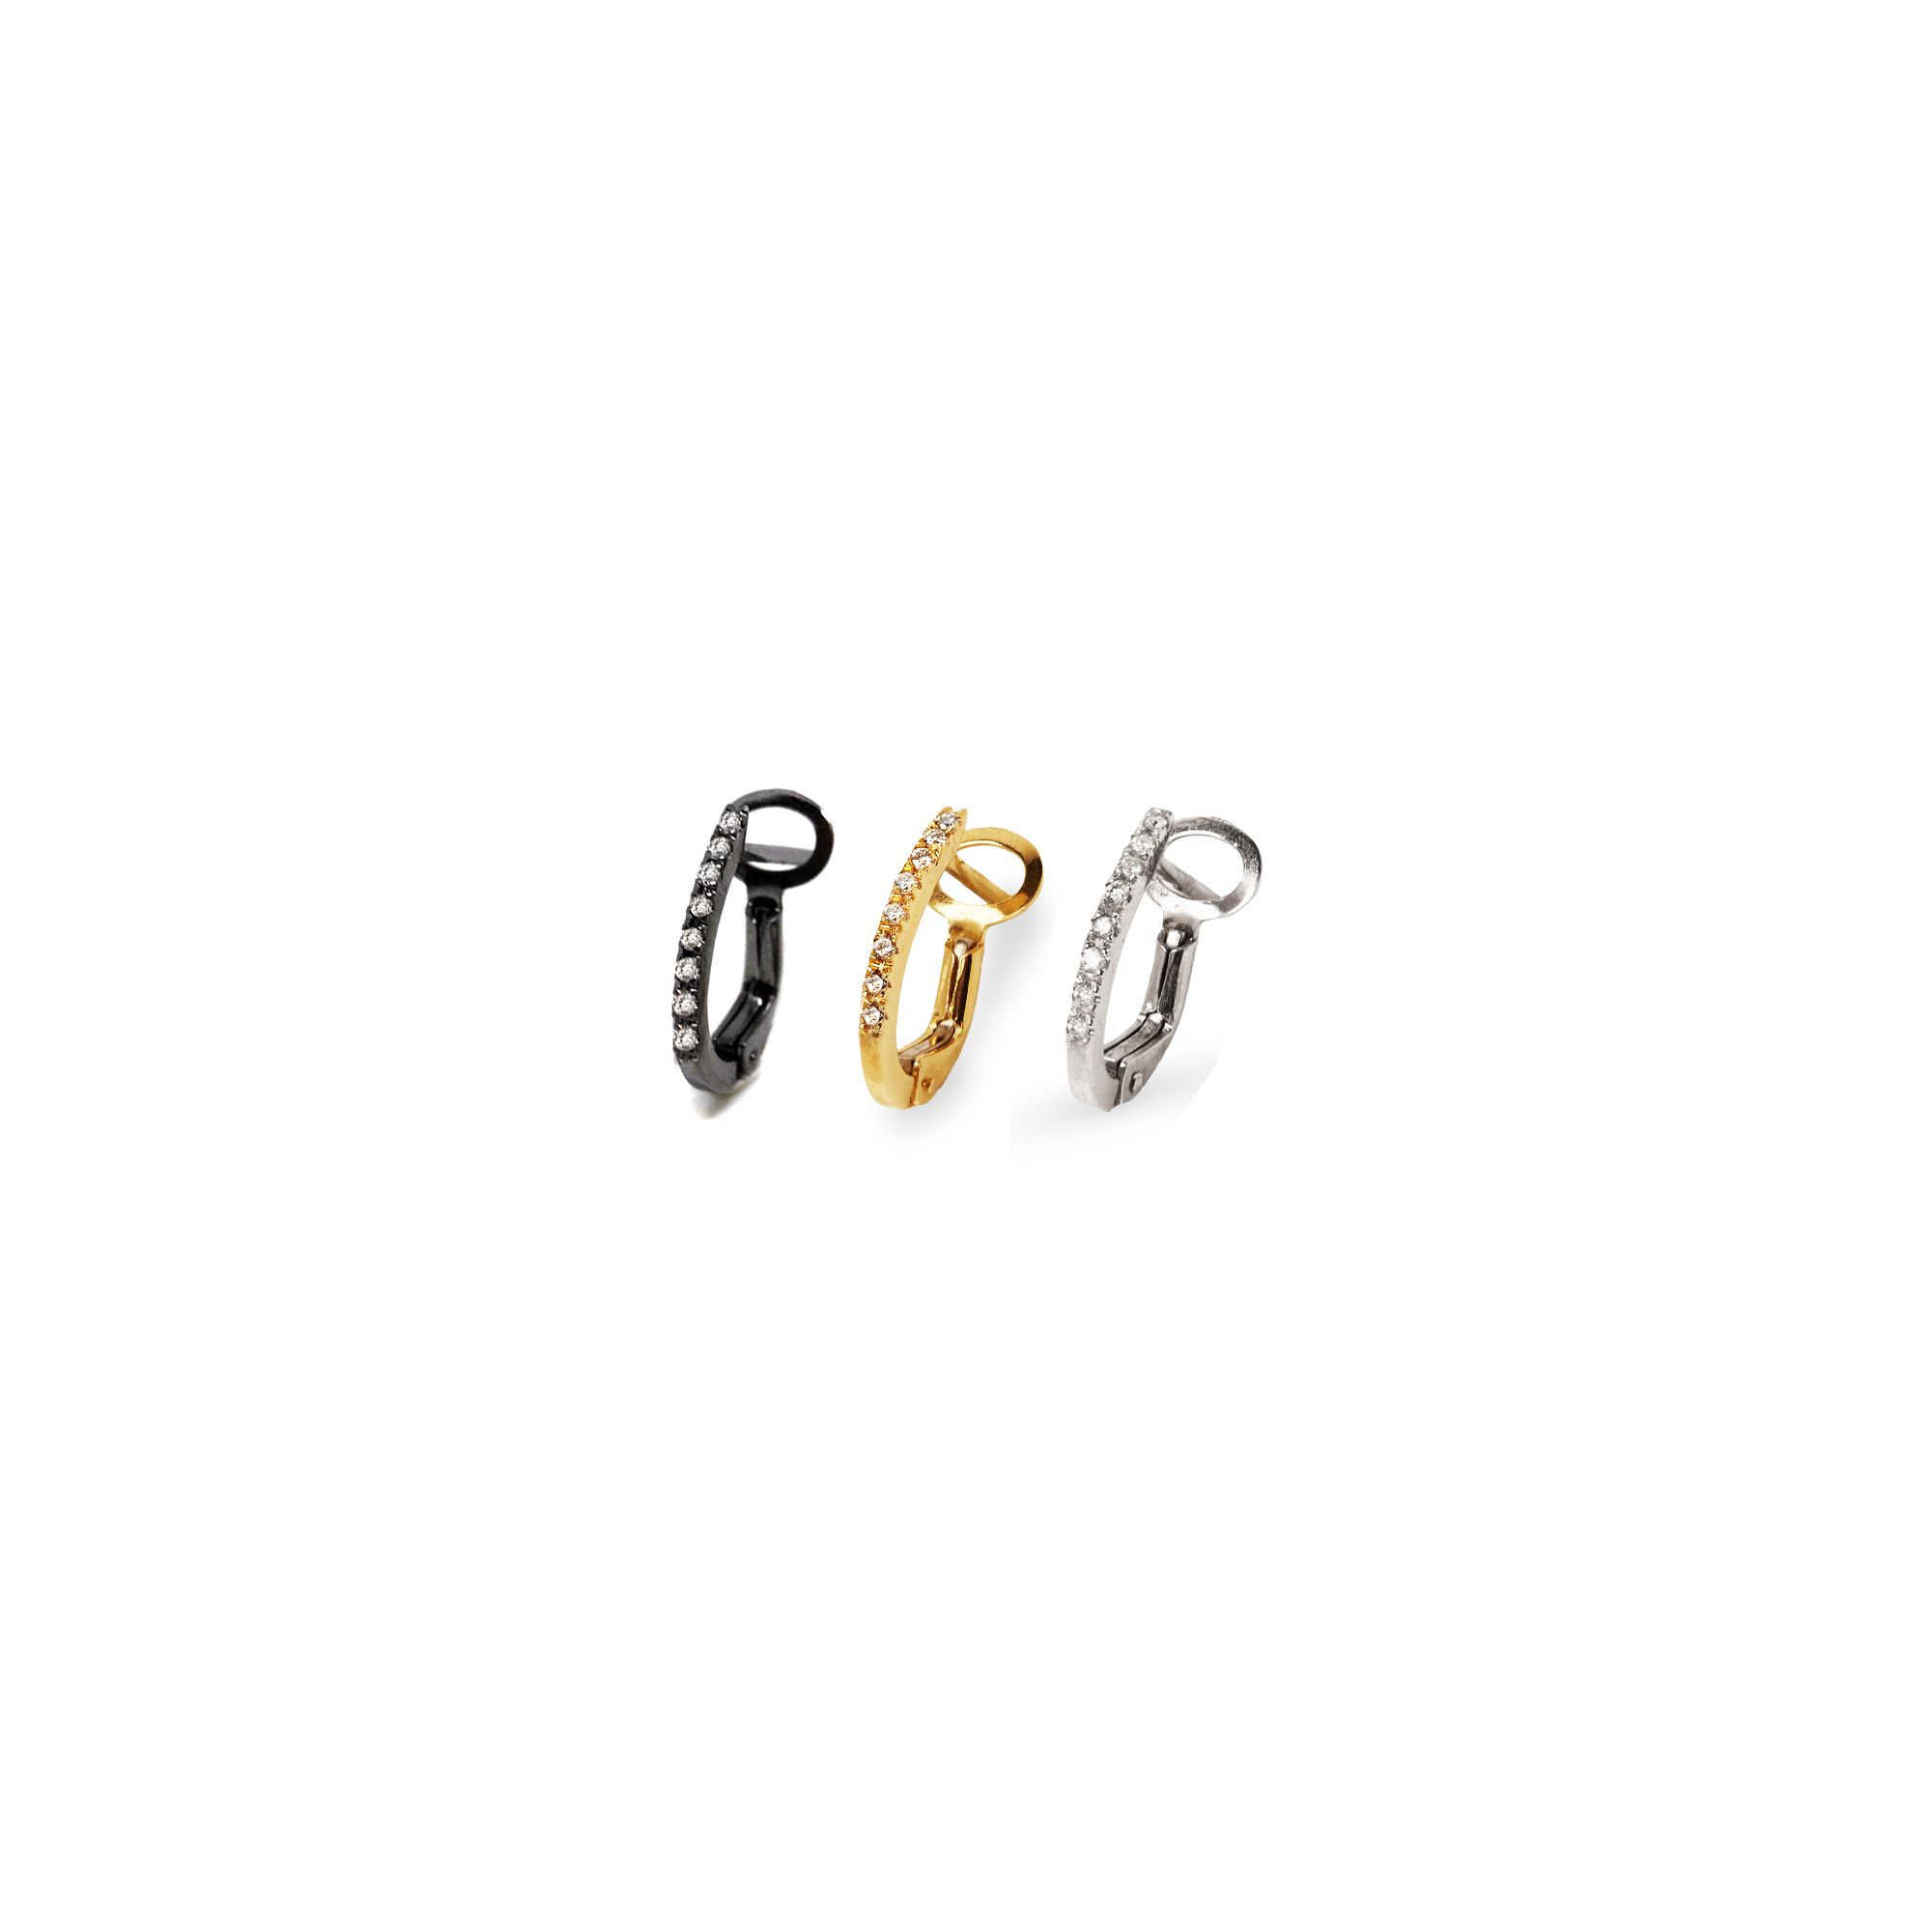 Set of three gold hoop earrings Yellow, white and black gold earrings with diamonds